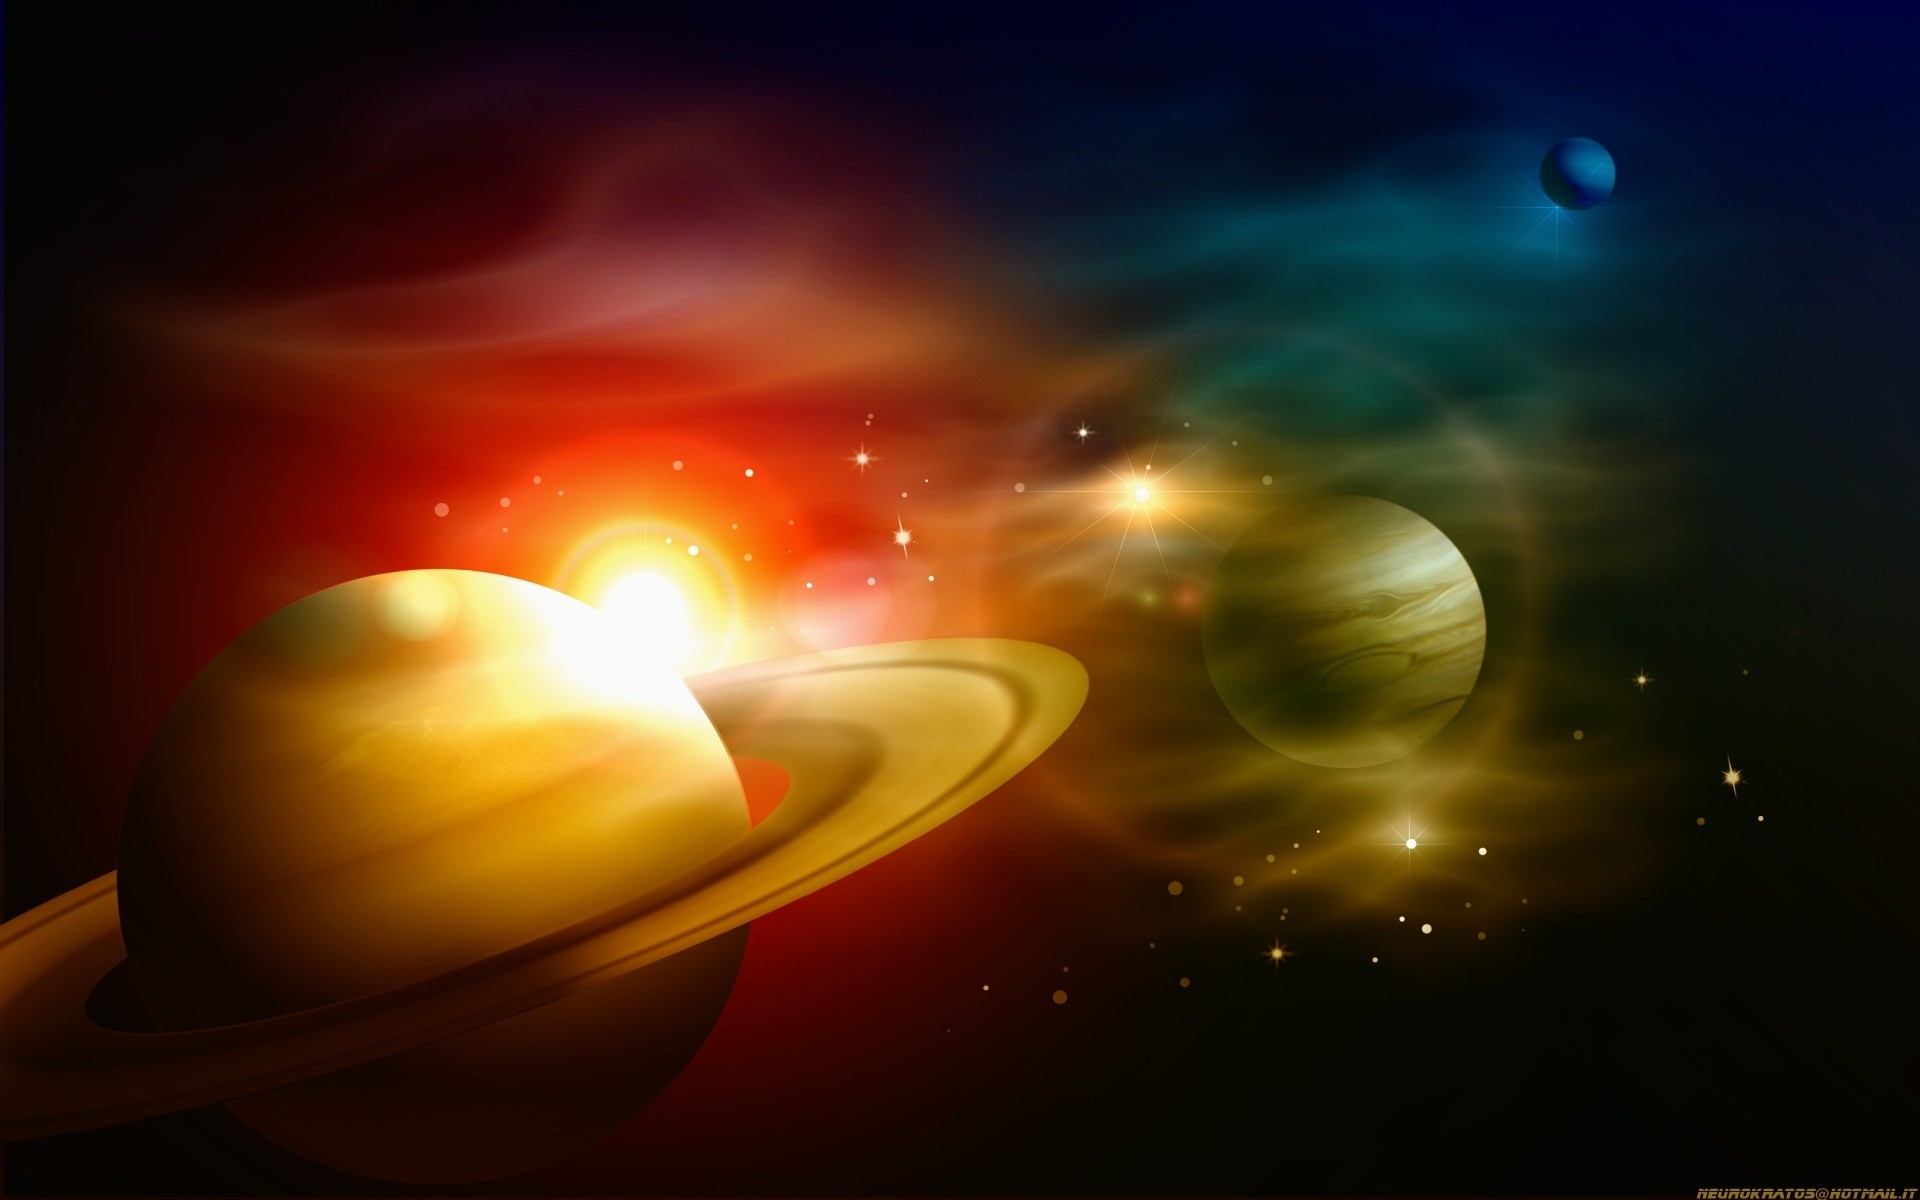 Space star sun pixel wallpaper solar planets wallpapers parallel system  large